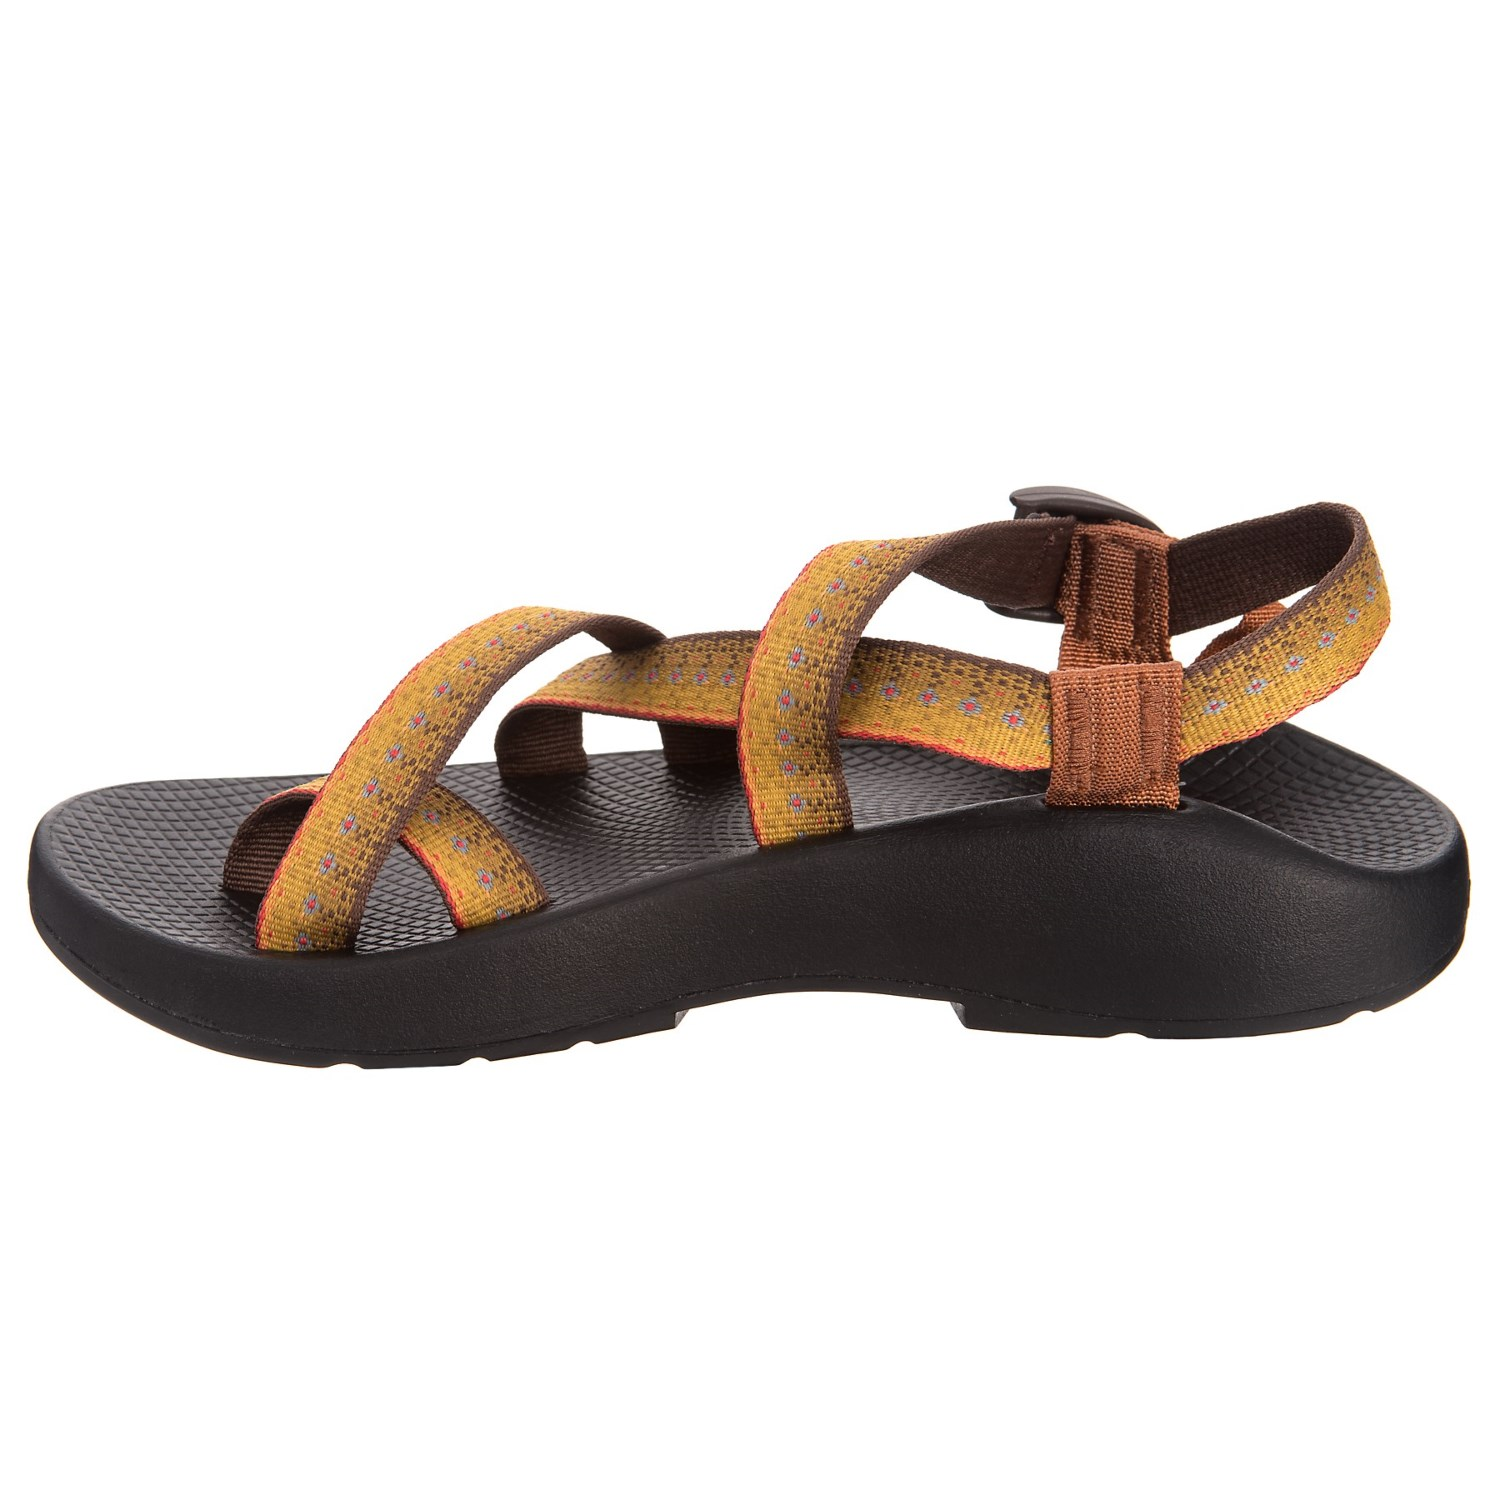 f65e9f31ab16 Fishpond Native Z2 Sport Sandals (For Men) - Save 45%